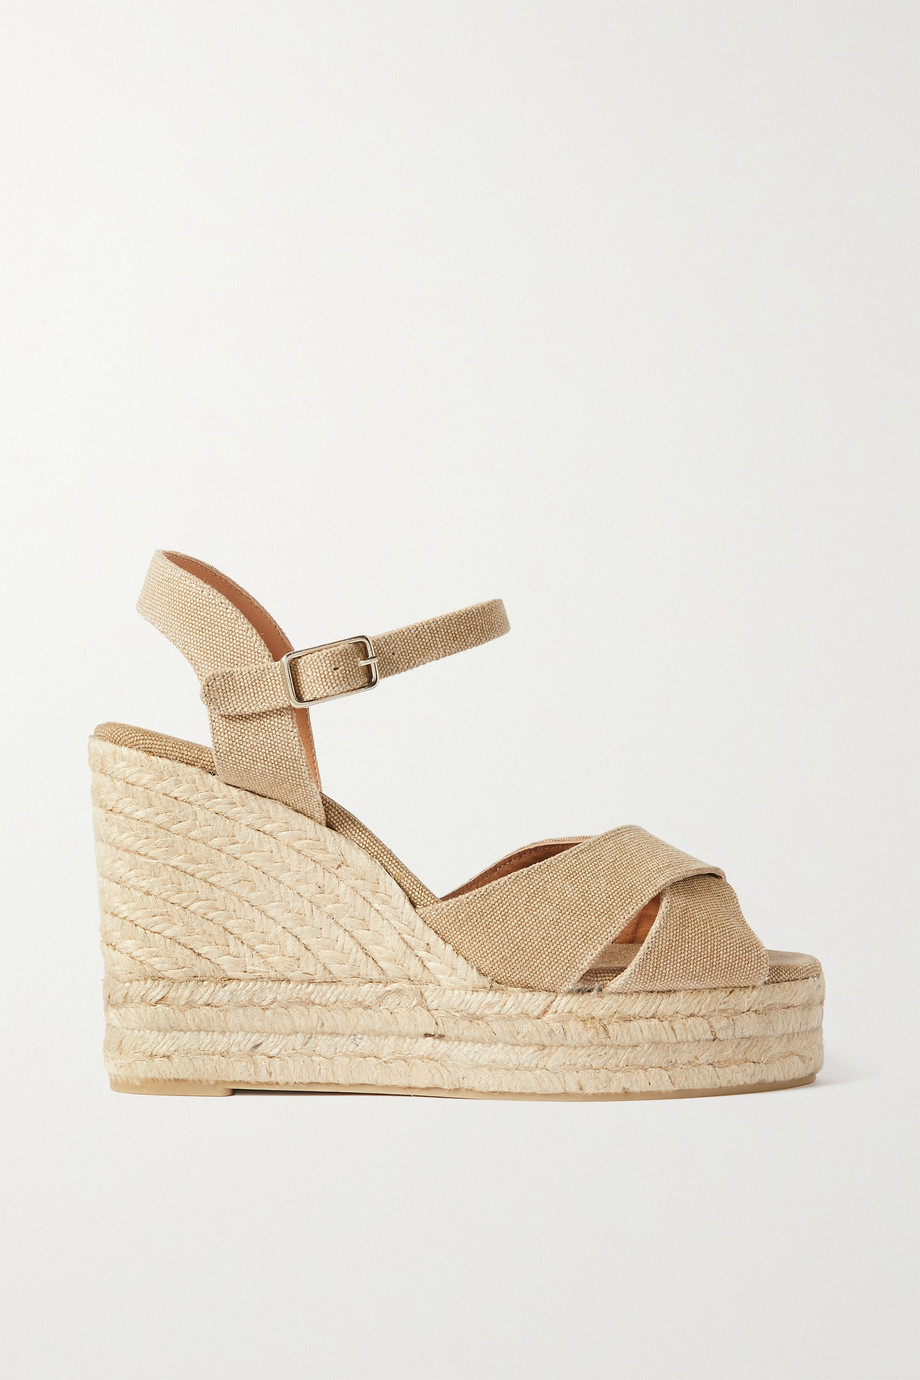 CASTAÑER + NET SUSTAIN Blaudel 100 canvas wedge sandals